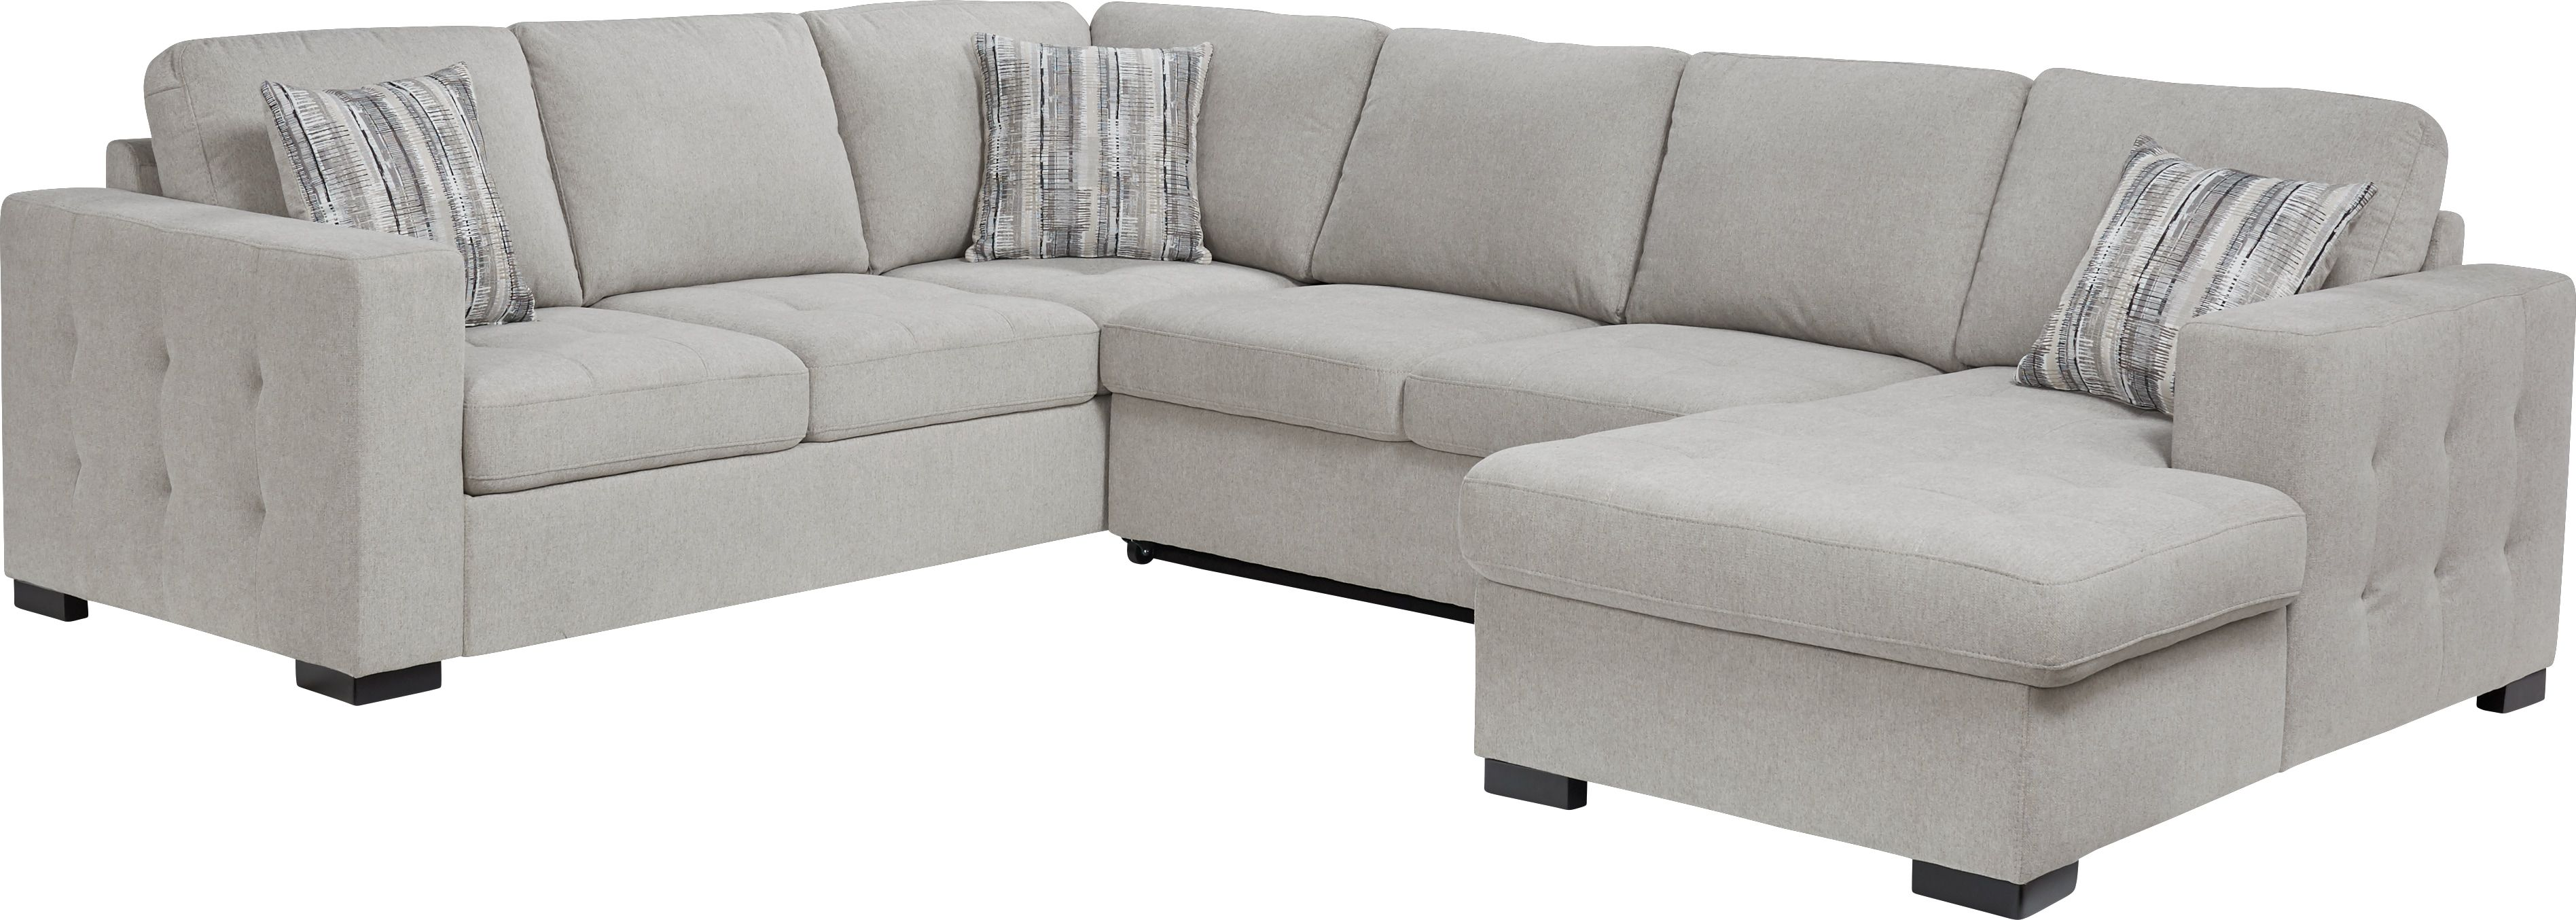 Angelino Heights Gray 3 Pc Sleeper Sectional In 2019